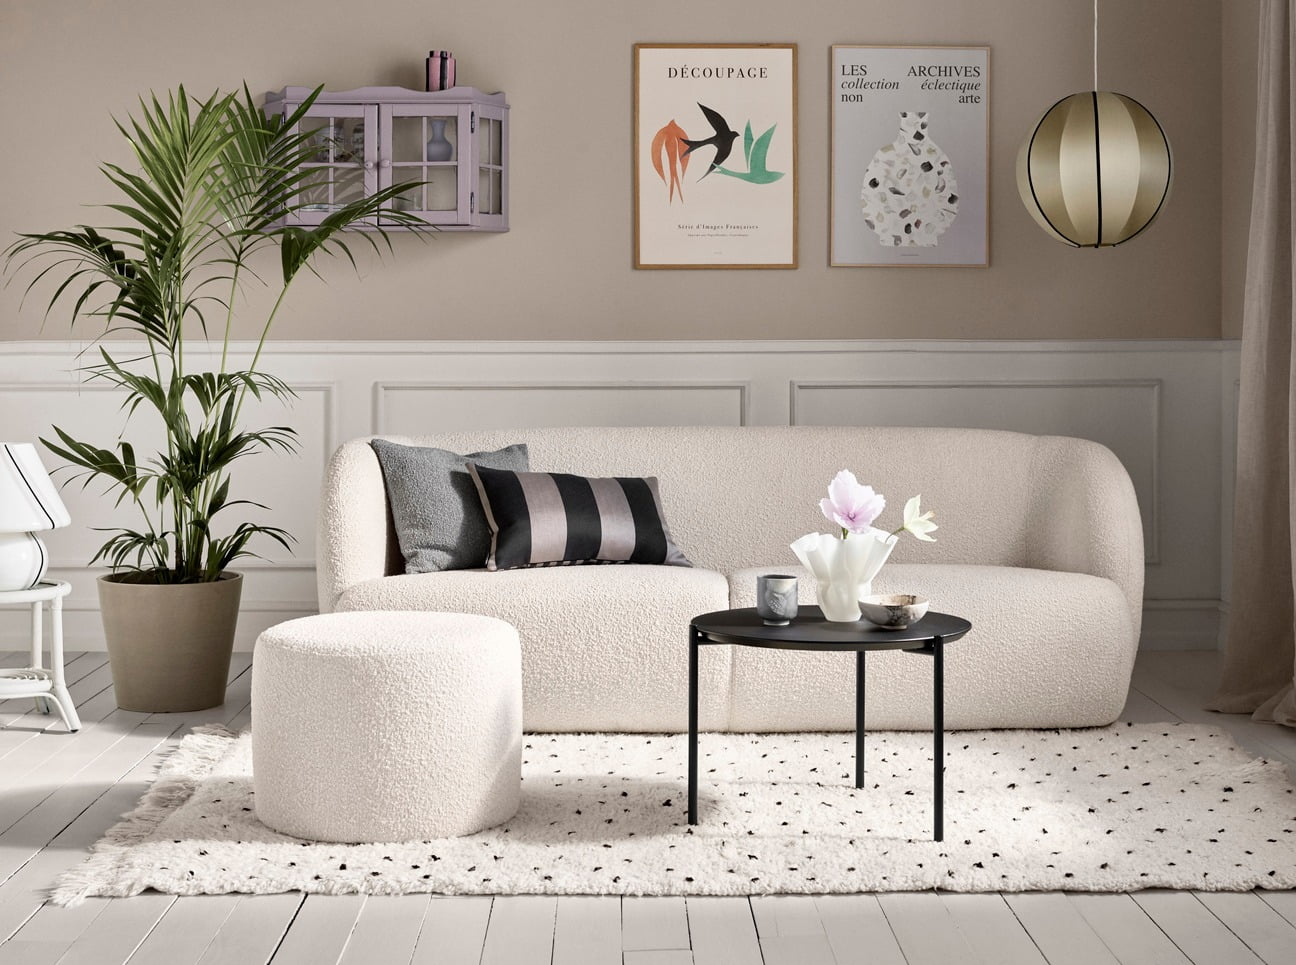 Picture frame, Plant, Furniture, Couch, Property, White, Comfort, Table, Green, Rectangle